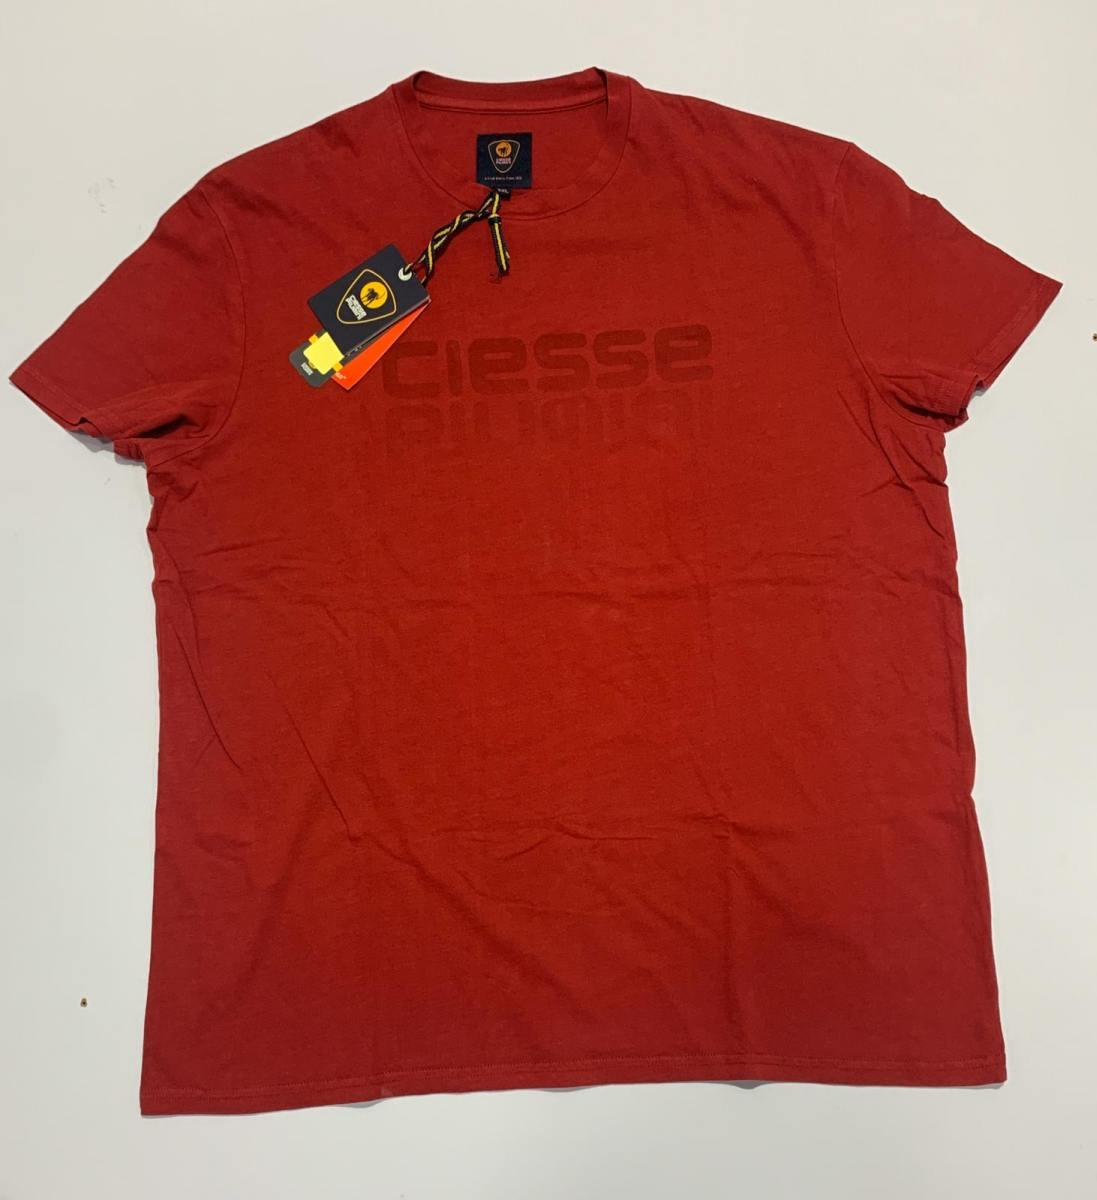 T-shirt uomo mm ciesse 1105 nelso